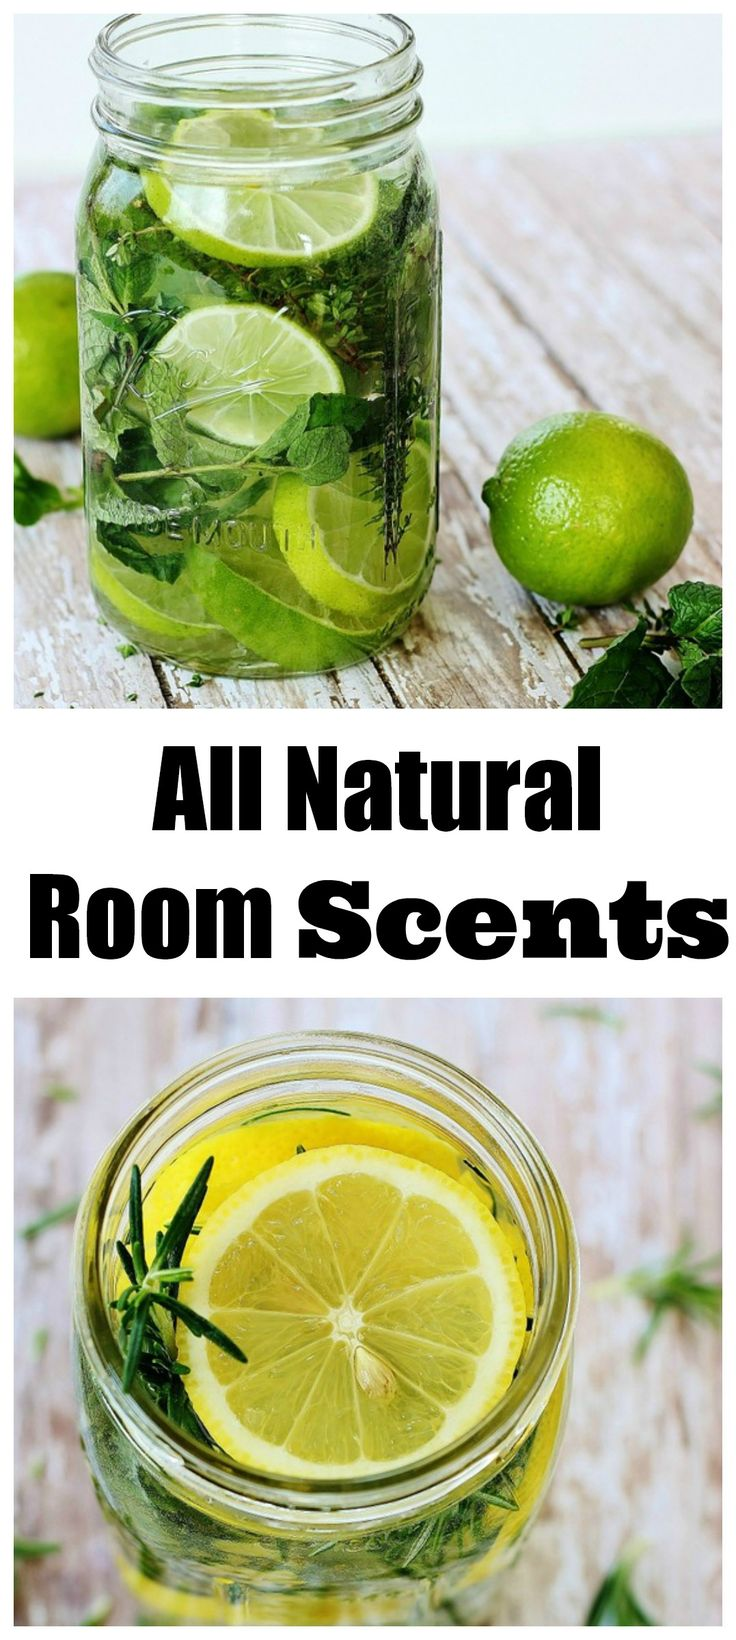 Looking to create your own all natural room scents? Use herbs, extracts and citrus to create your own.